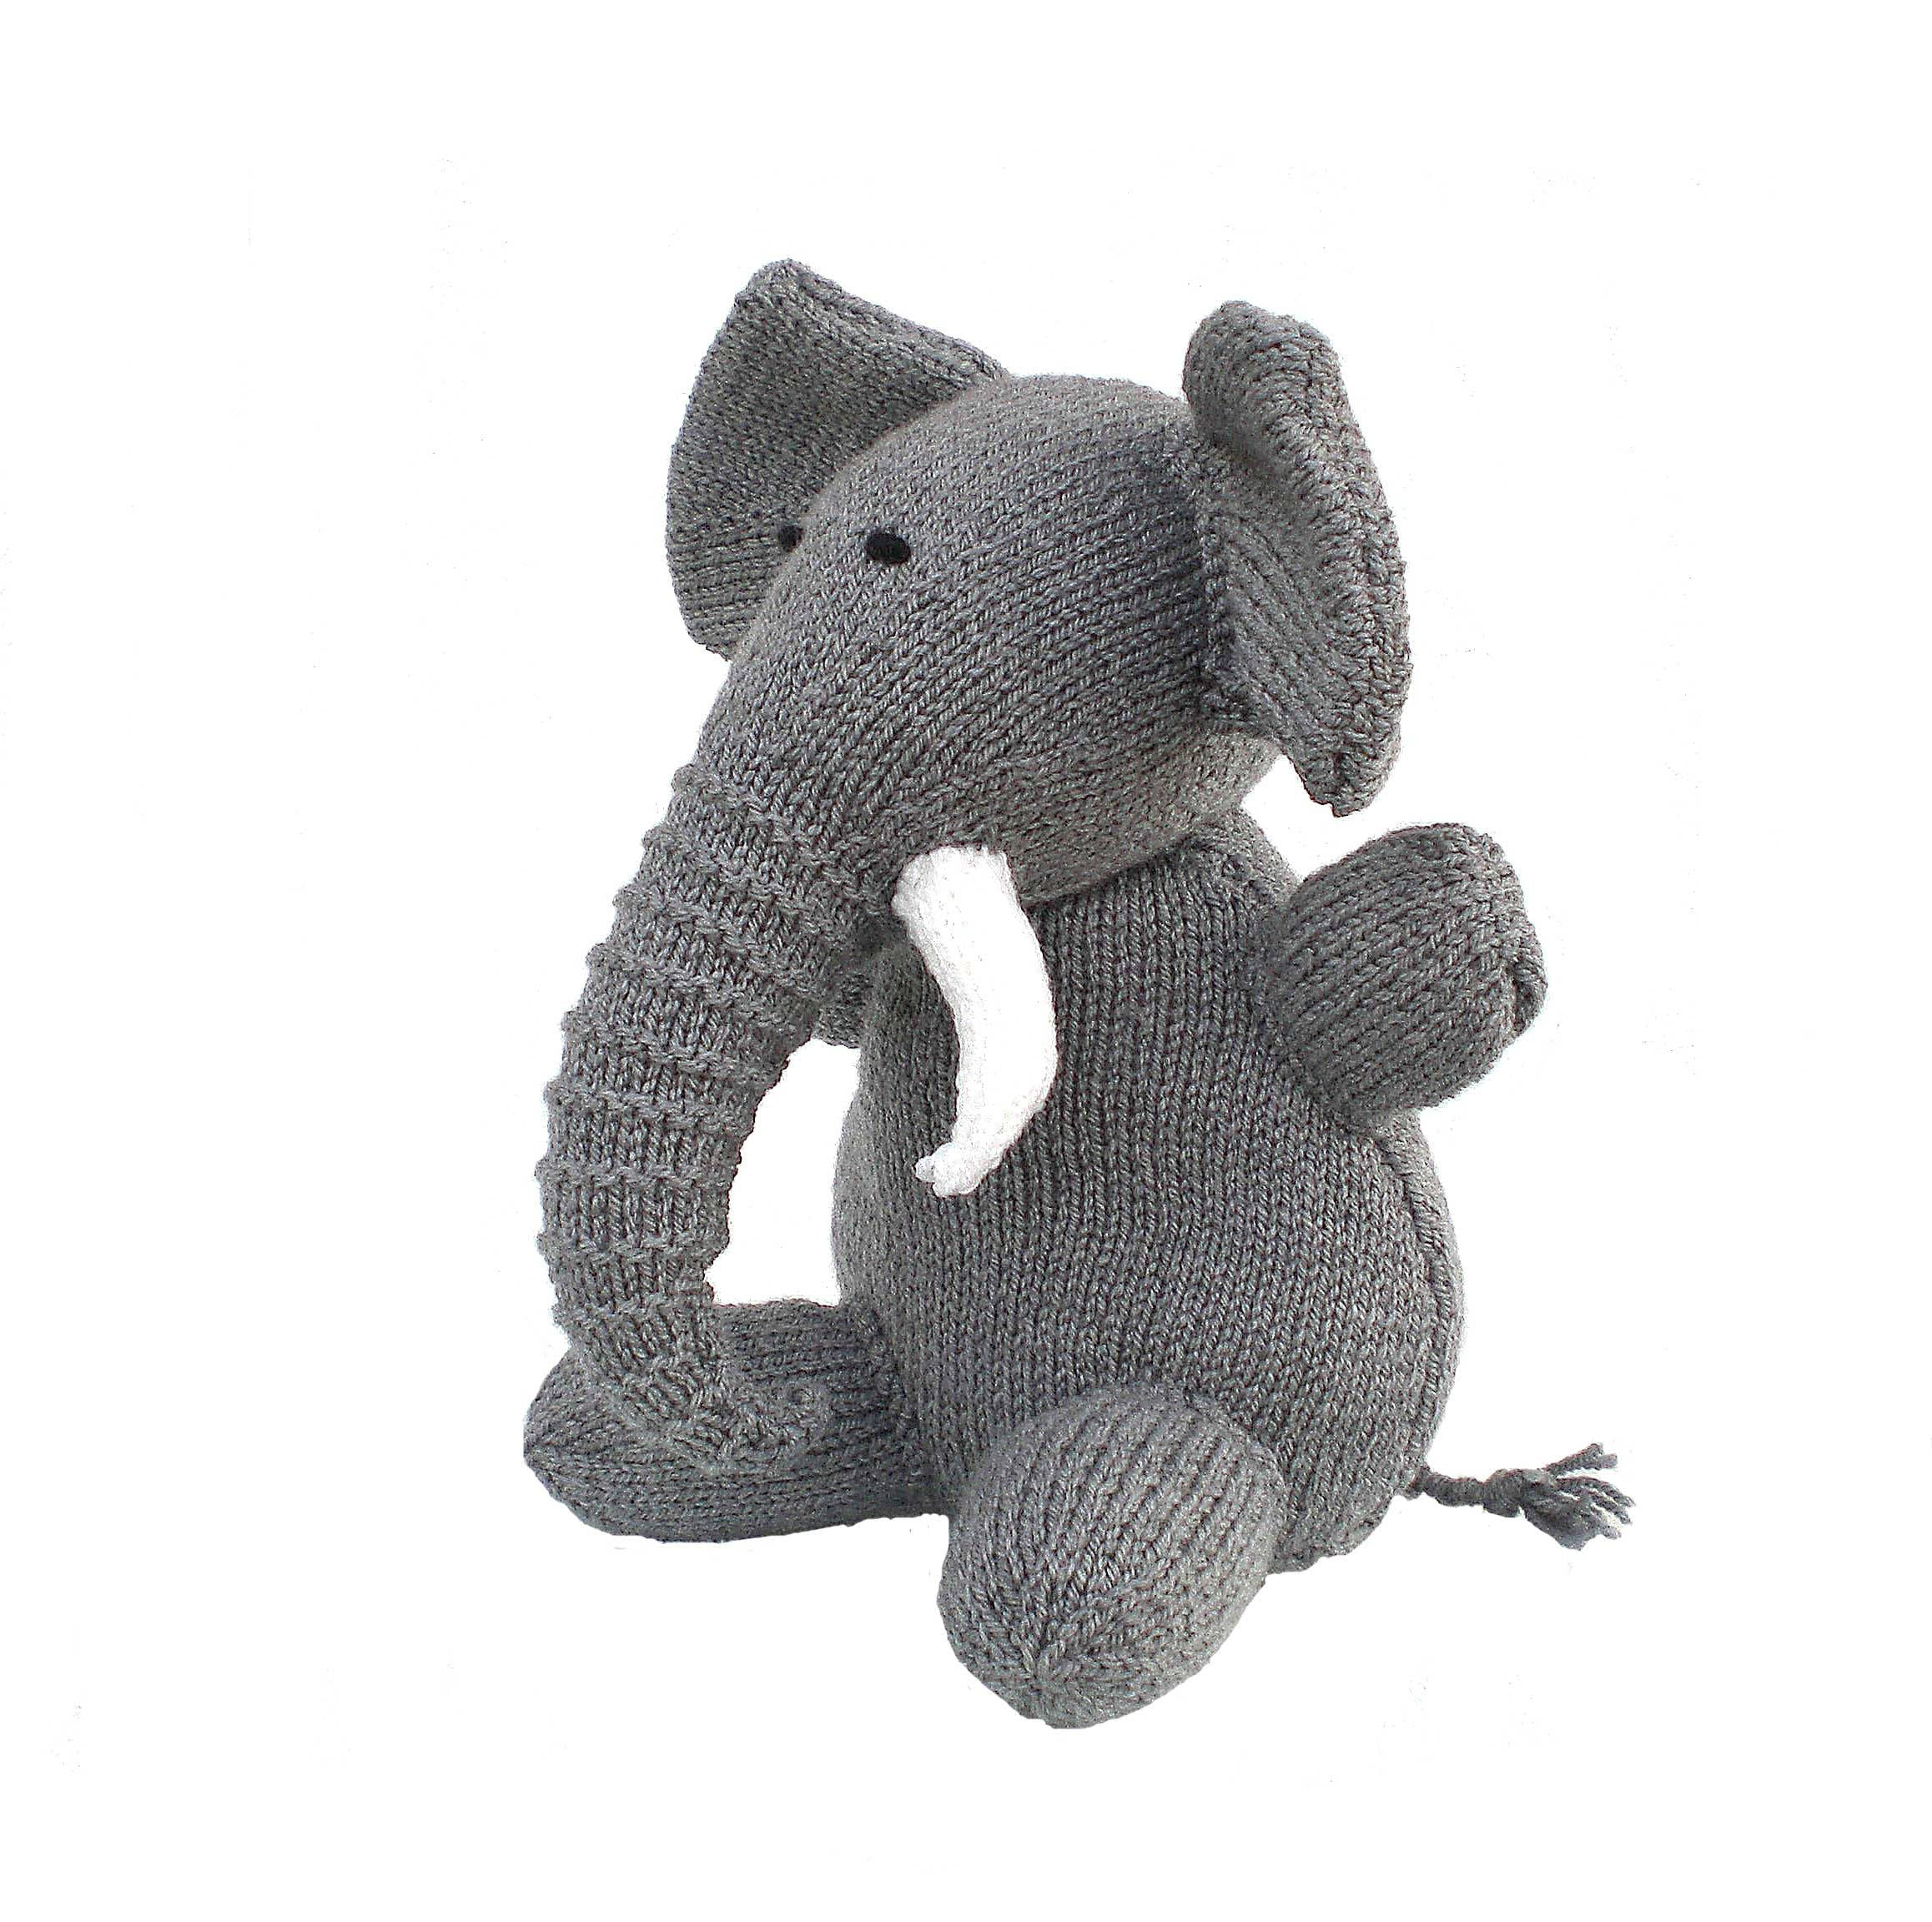 Knitted Elephant Toy, CE Tested Toy, Knitted Toy, Stuffed Toy, Soft Toy, Child Gift, Kids Gift, Baby Shower Present, Christmas Gift